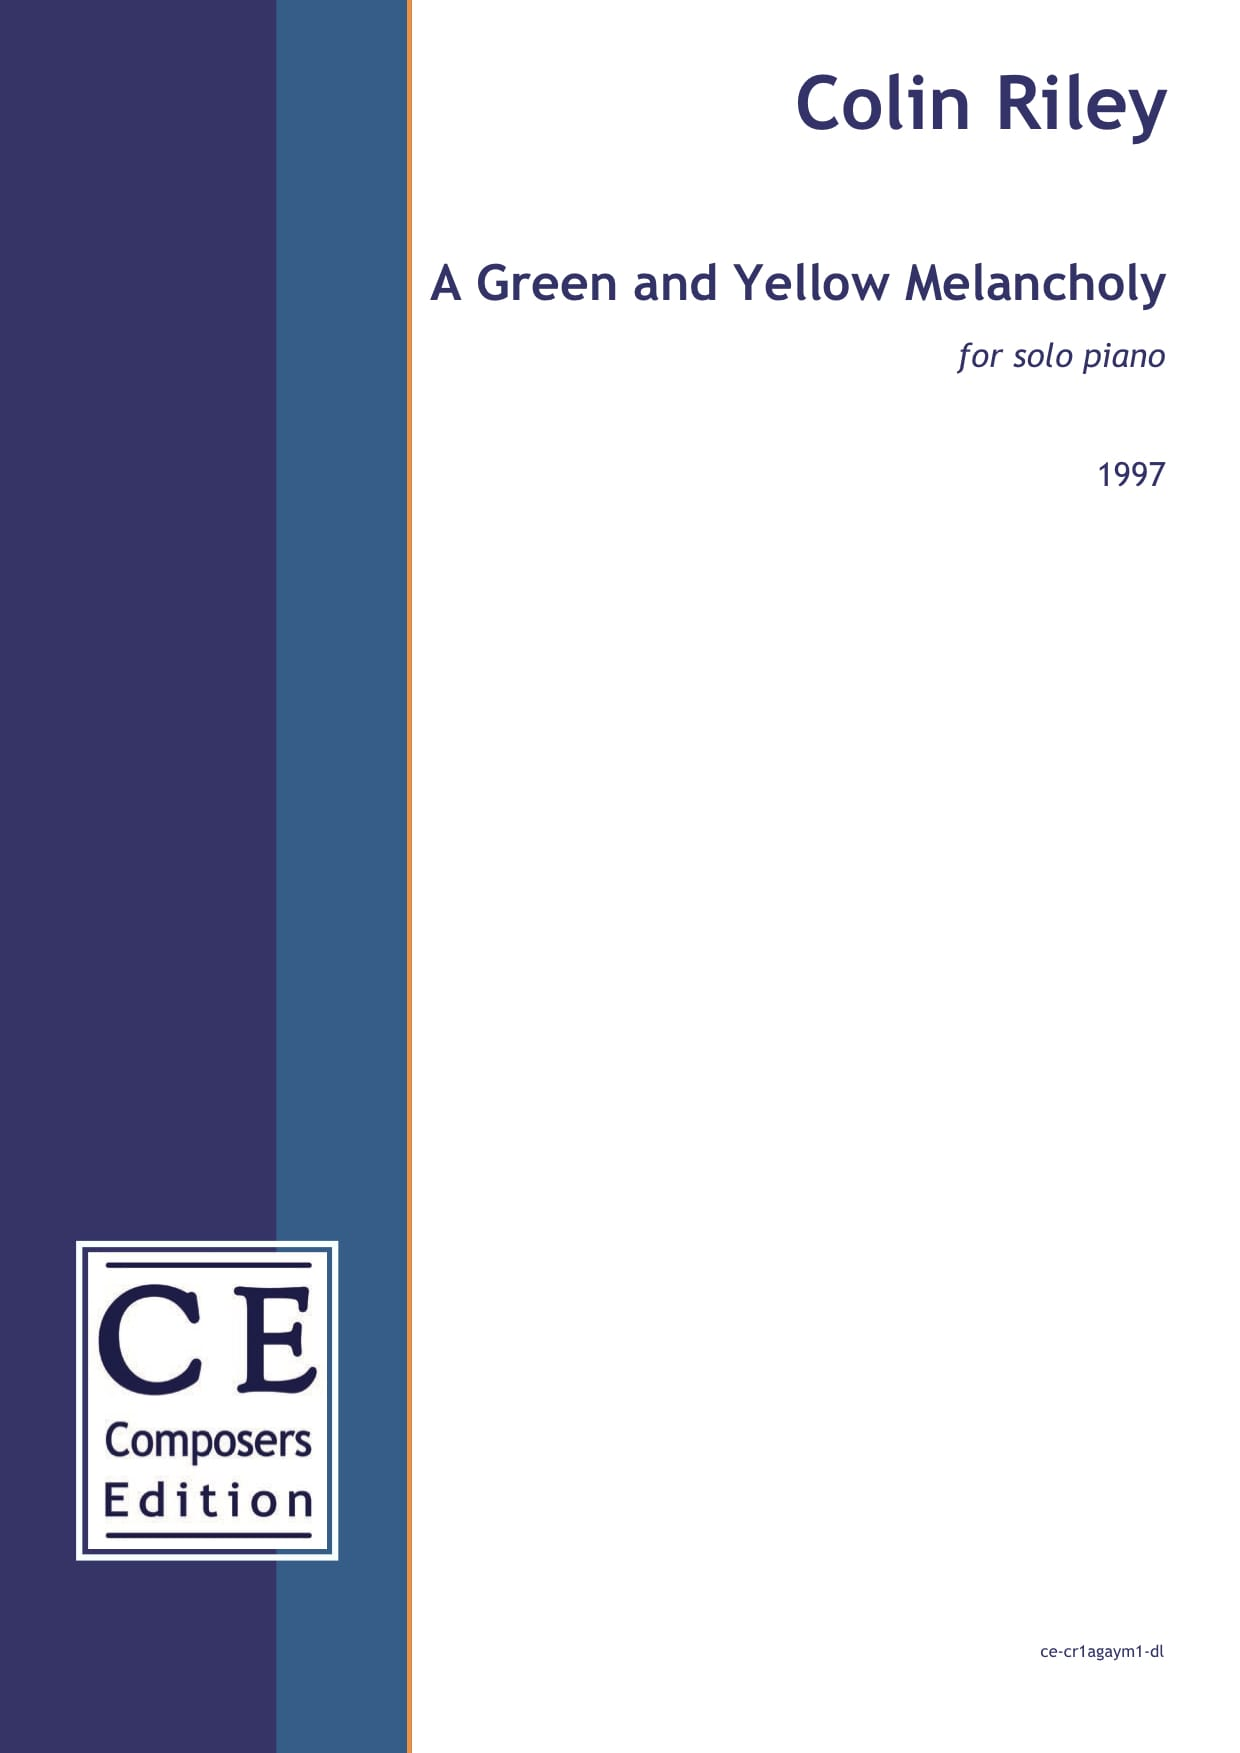 Colin Riley: A Green and Yellow Melancholy for solo piano